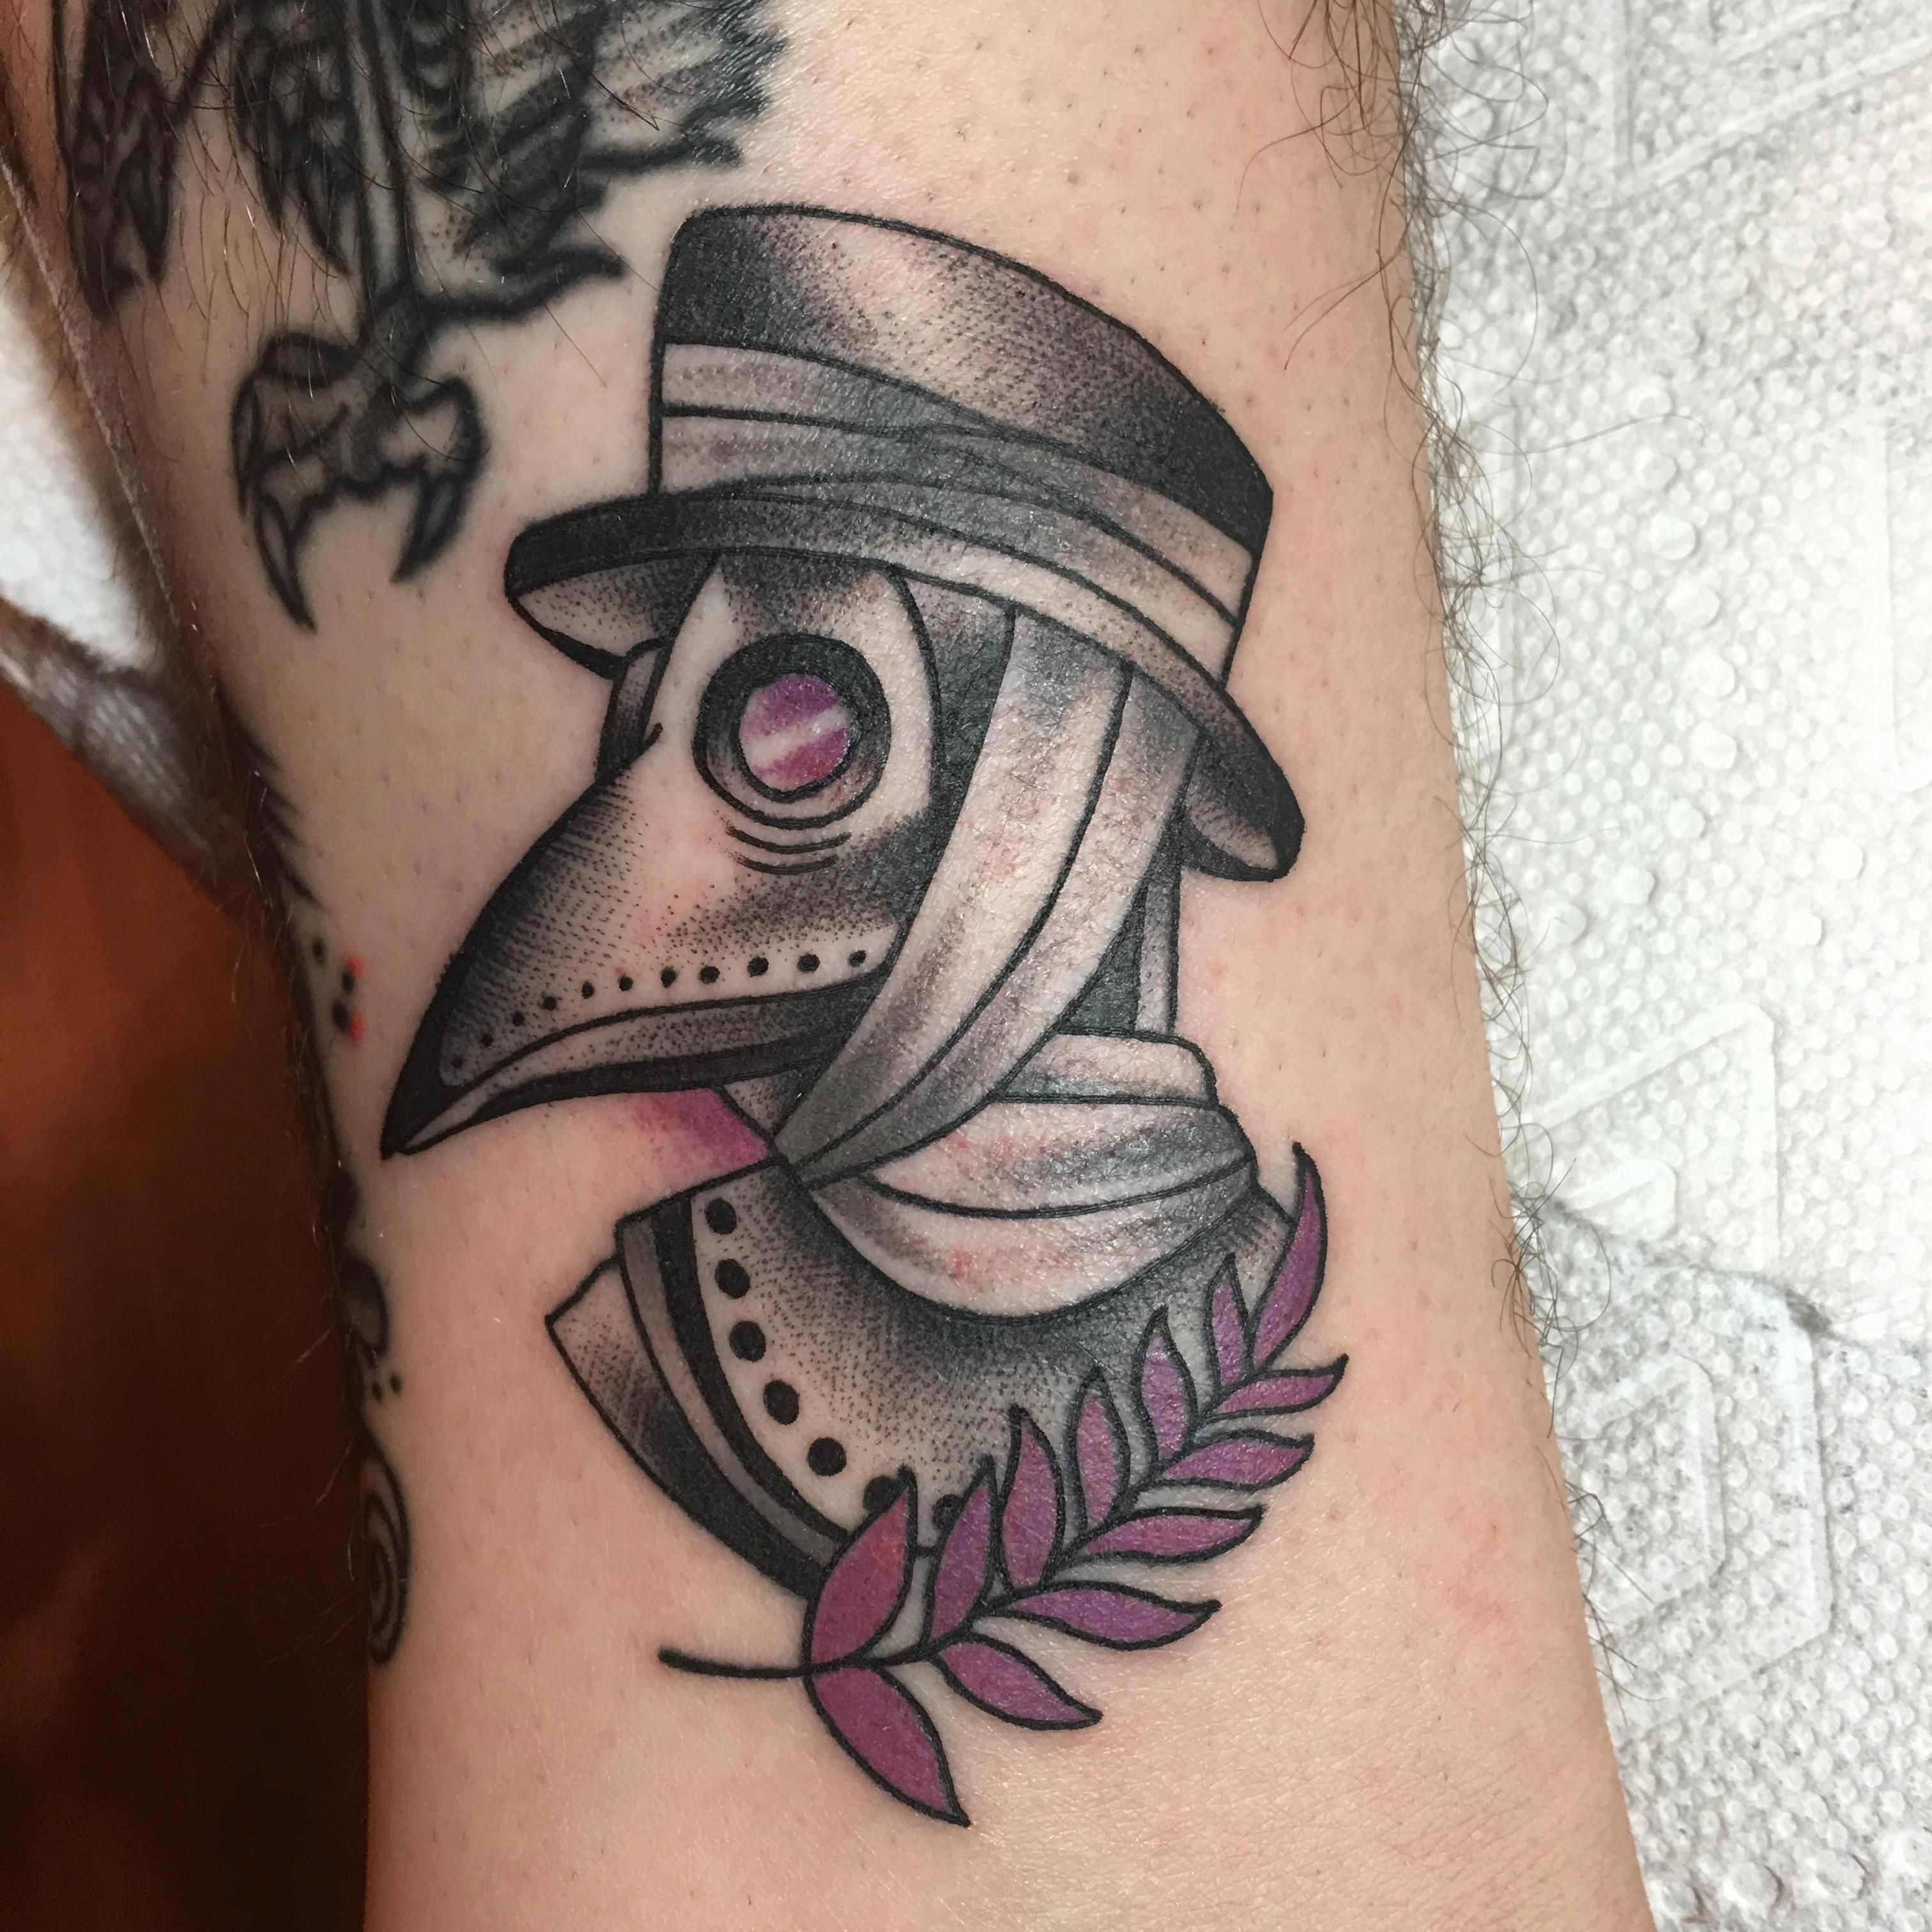 Plague Doctor by Drew at Sin Alley Tattoo in Pawtucket RI